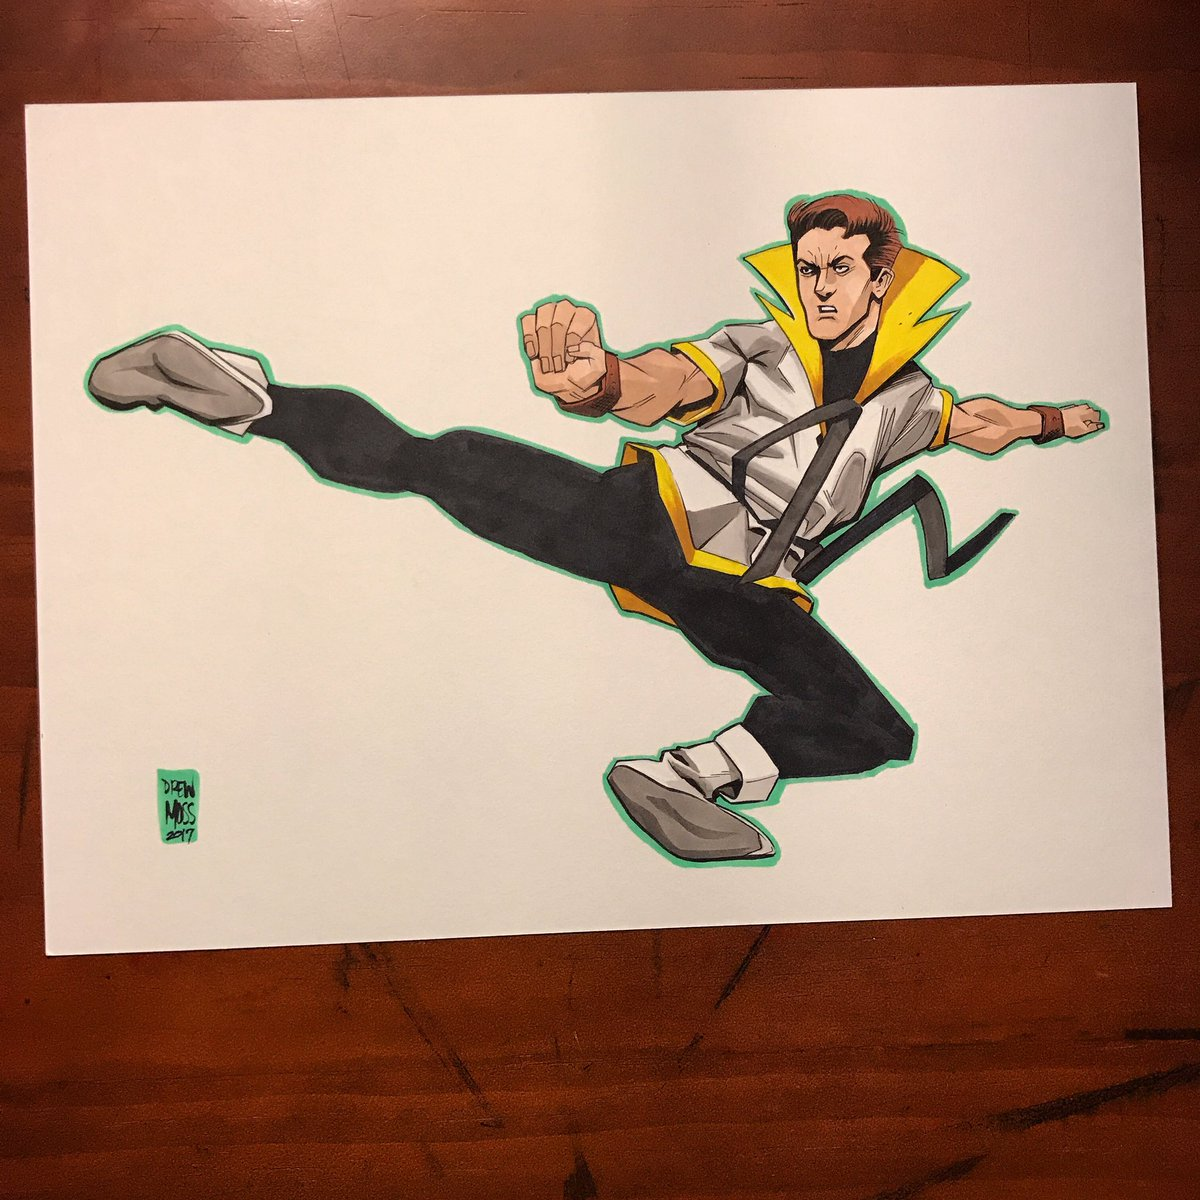 #karatekid #dccomics #legionofsuperheroes #commission. A real quick one before bed. Nite y&#39;all <br>http://pic.twitter.com/J8TVPsf5Y4